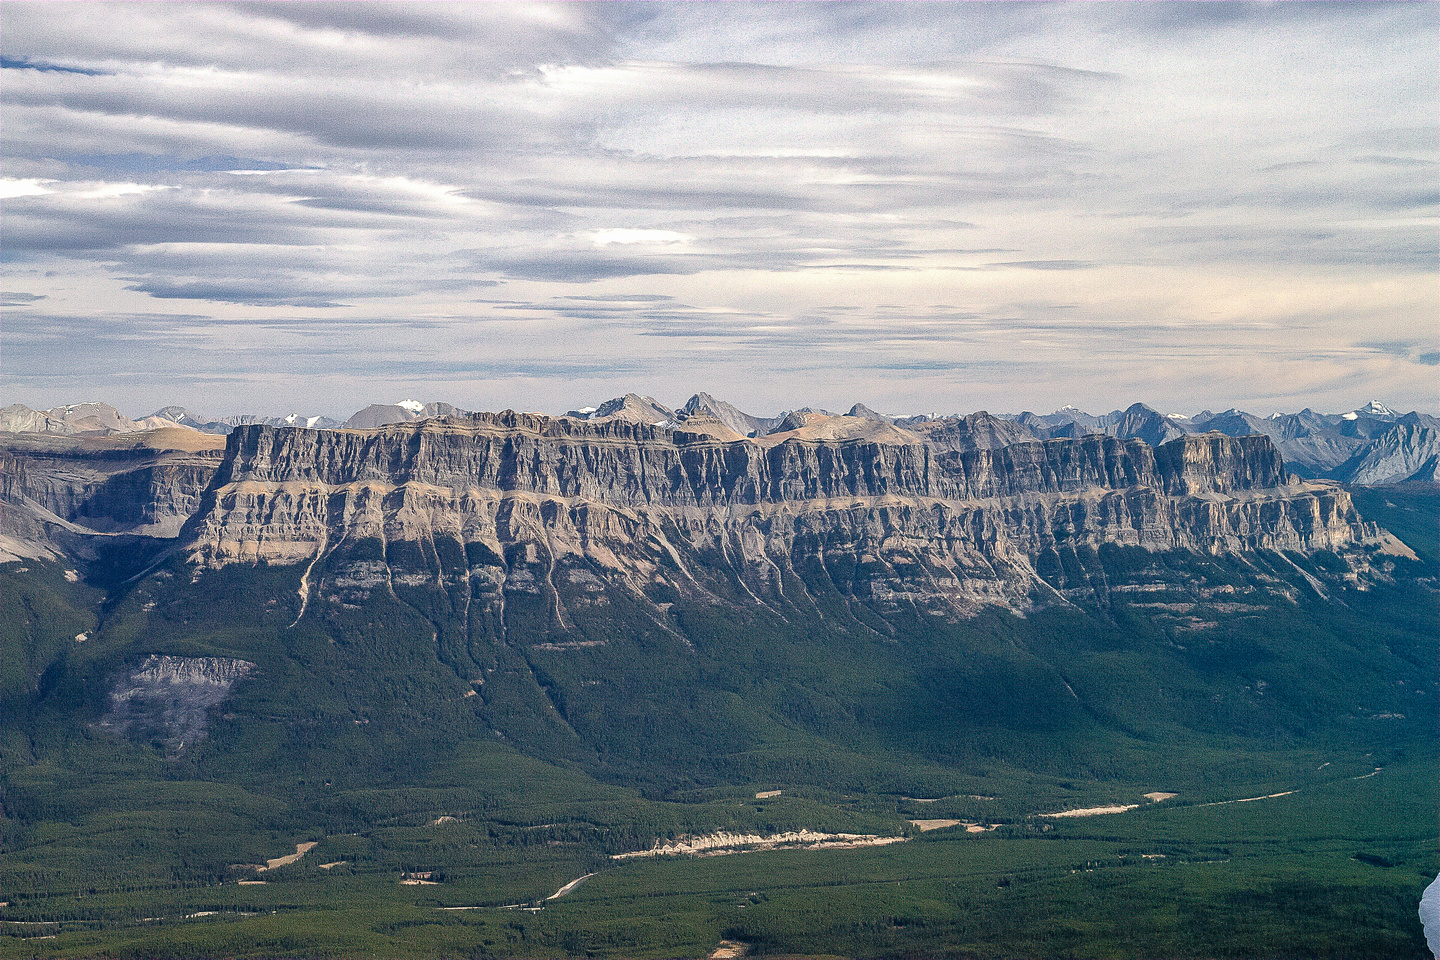 The always-impressive Castle Mountain massif across the Bow Valley and the TCH.